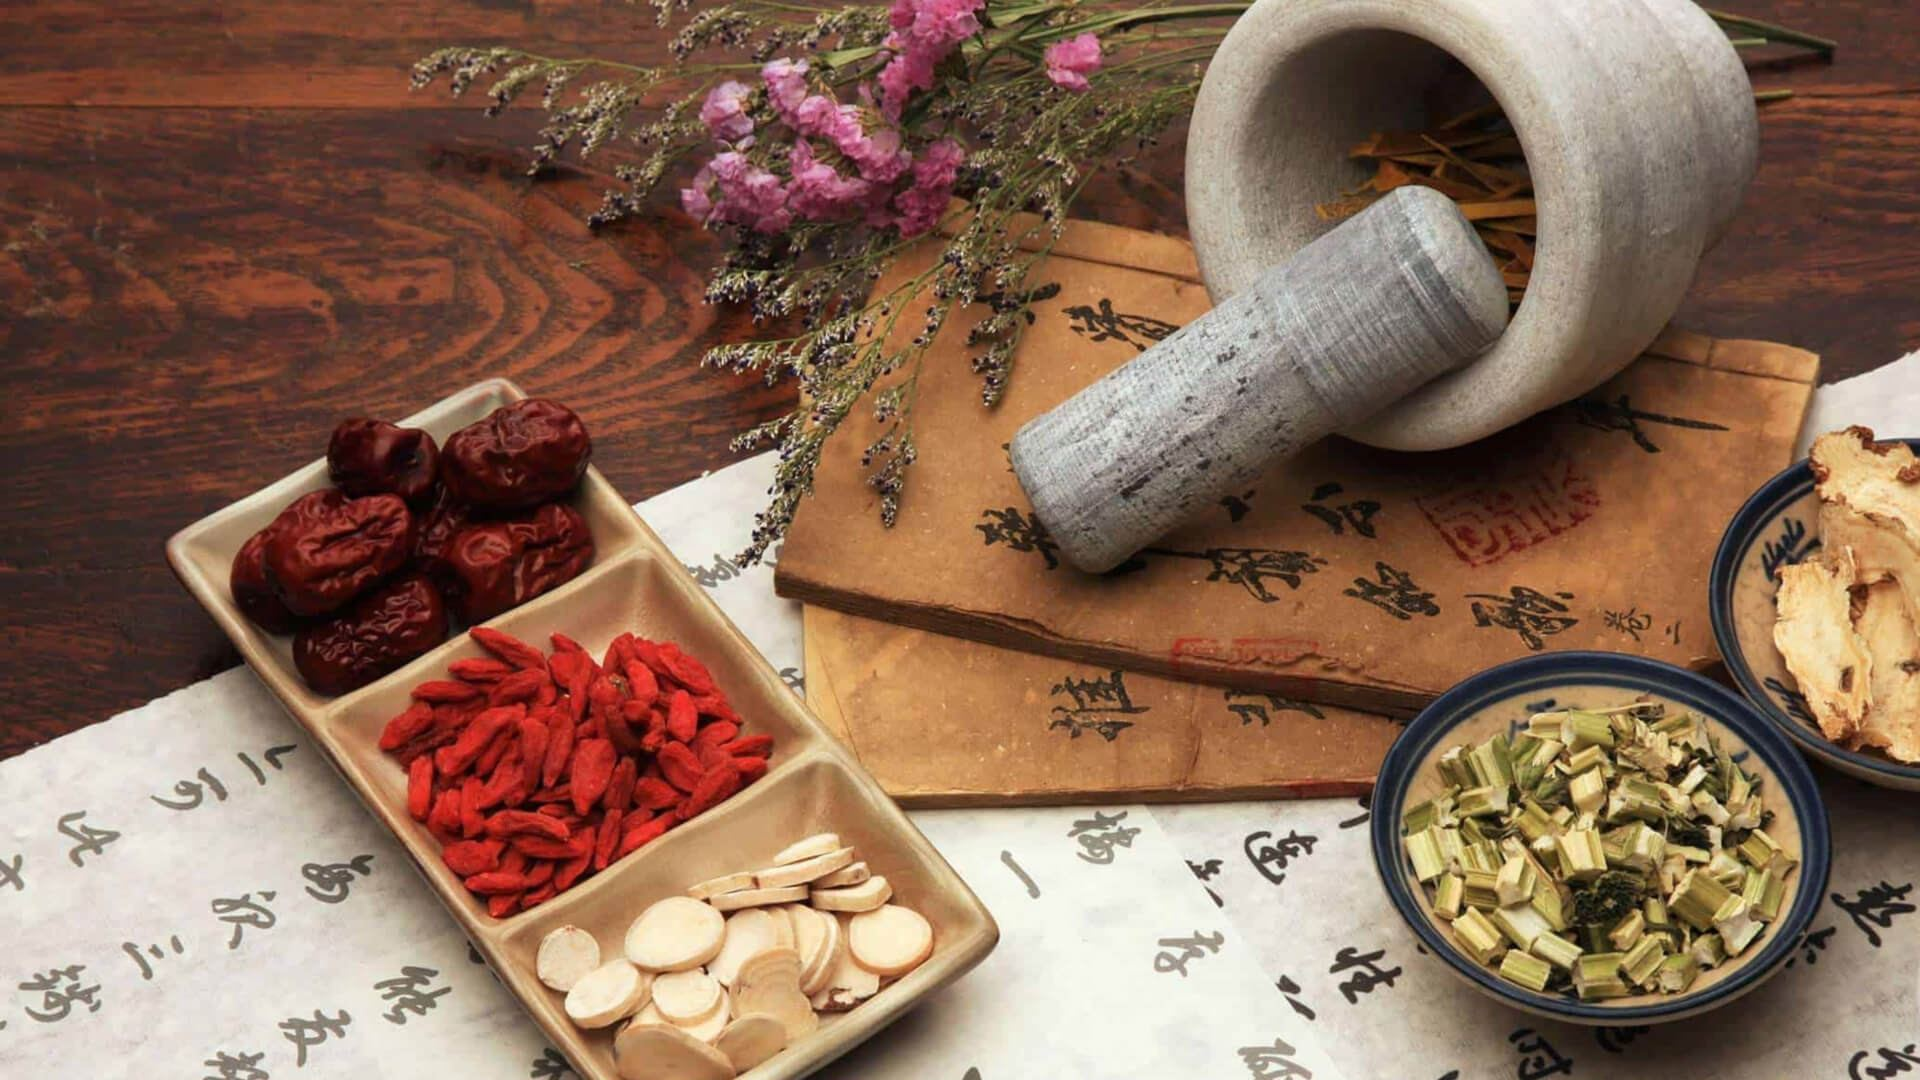 The researchers found effective Chinese herbal decoction for treating insomnia